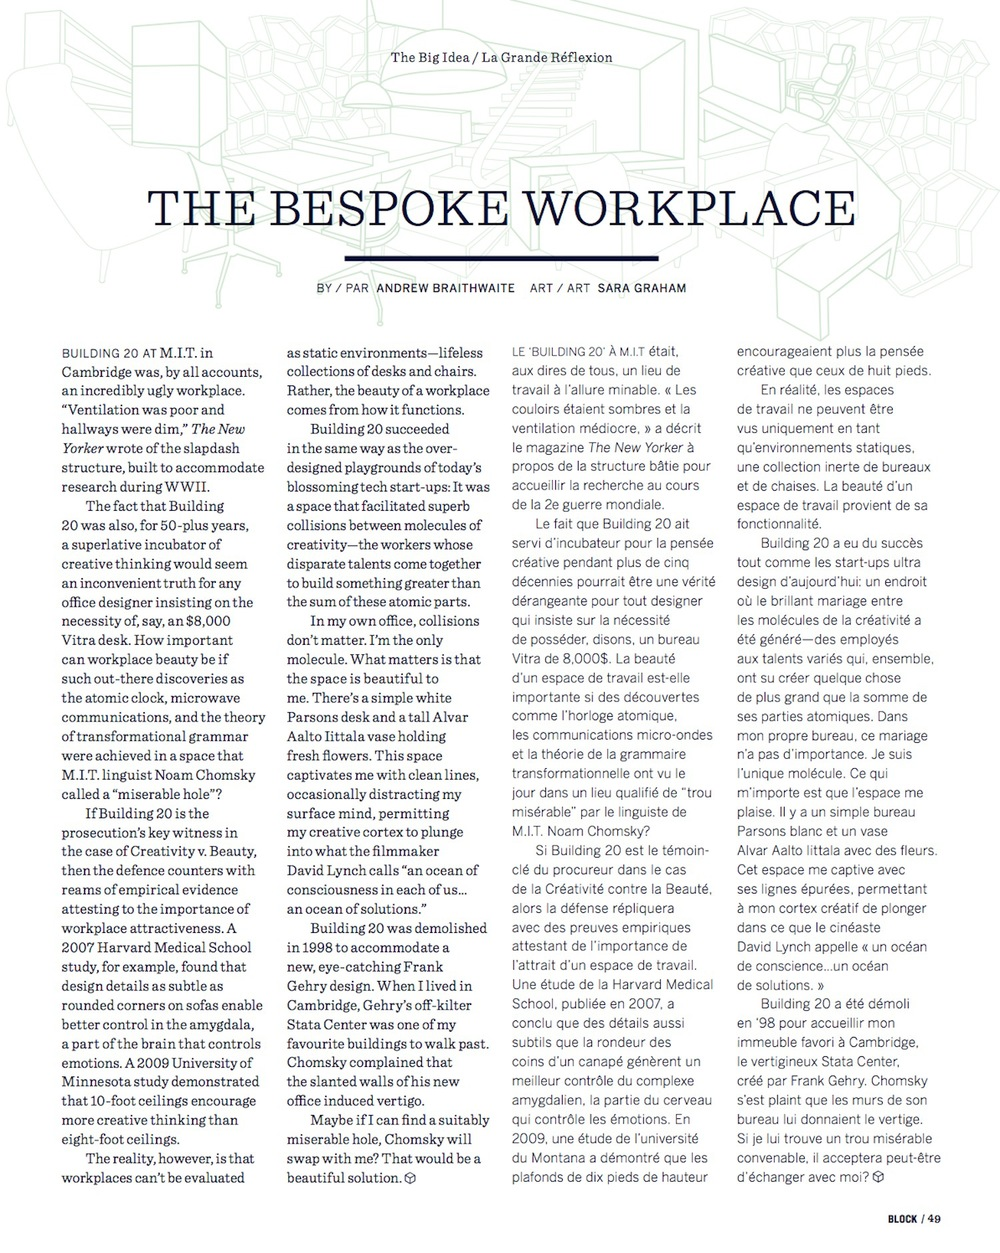 The Bespoke Workplace  //  Block  //  2013  //  pdf